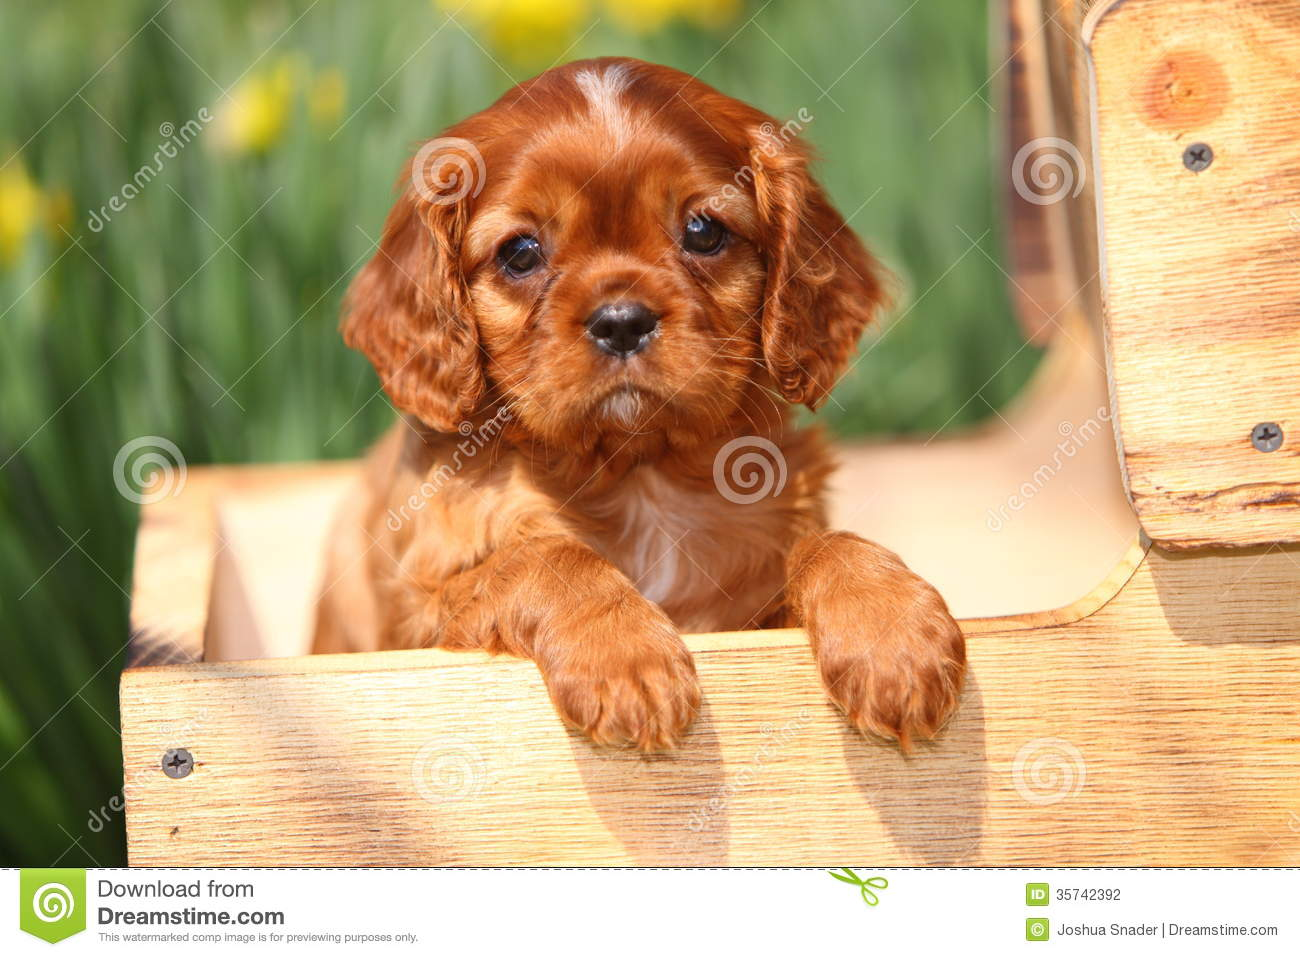 Cavalier King Charles Spaniel Puppy In Wooden Wagon Stock Photo Image Of Flowerbed Cavalier 35742392